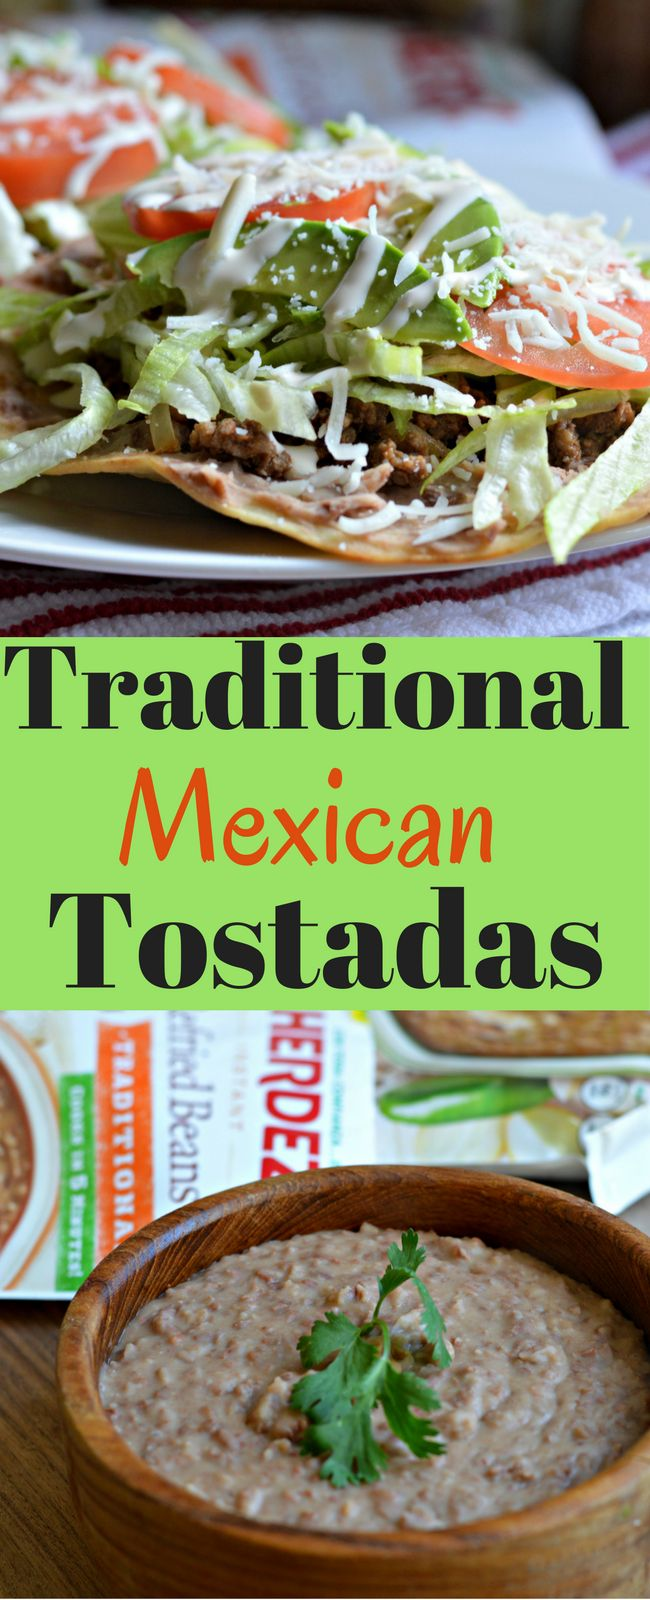 These traditional Mexican tostadas are delicious and you can make them in less than 20 minutes! #frijolescontodo #ad (Traditional Mexican Recipes)